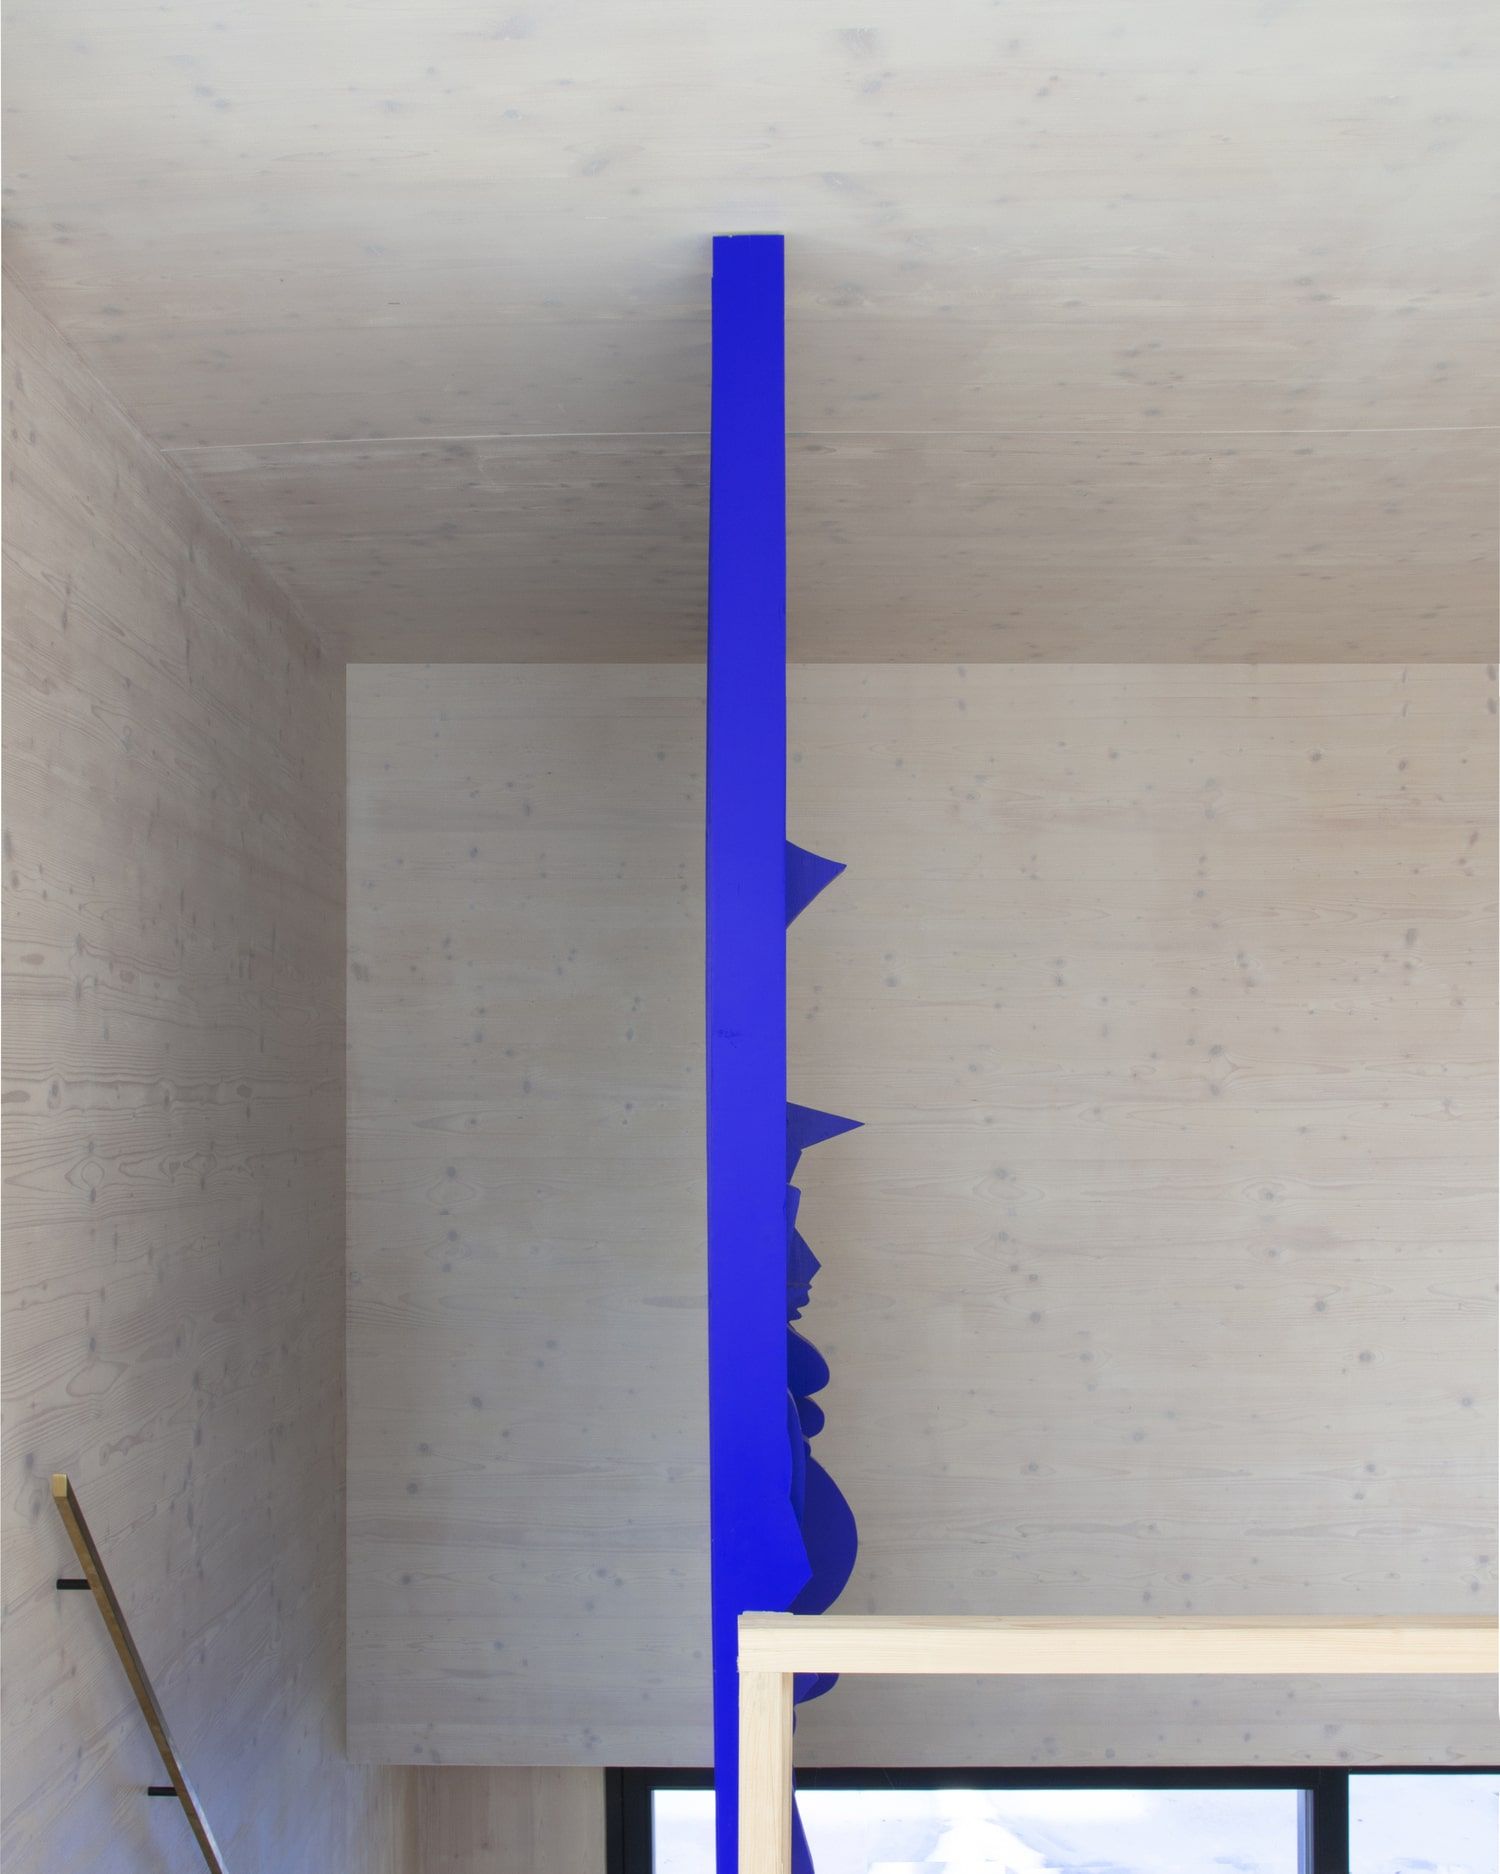 ultramarine staircase wall for private residence in milovice made of solid wood interior design by jiri krejcirik_4ultramarine staircase wall for private residence in milovice made of solid wood interior design by jiri krejcirik_4